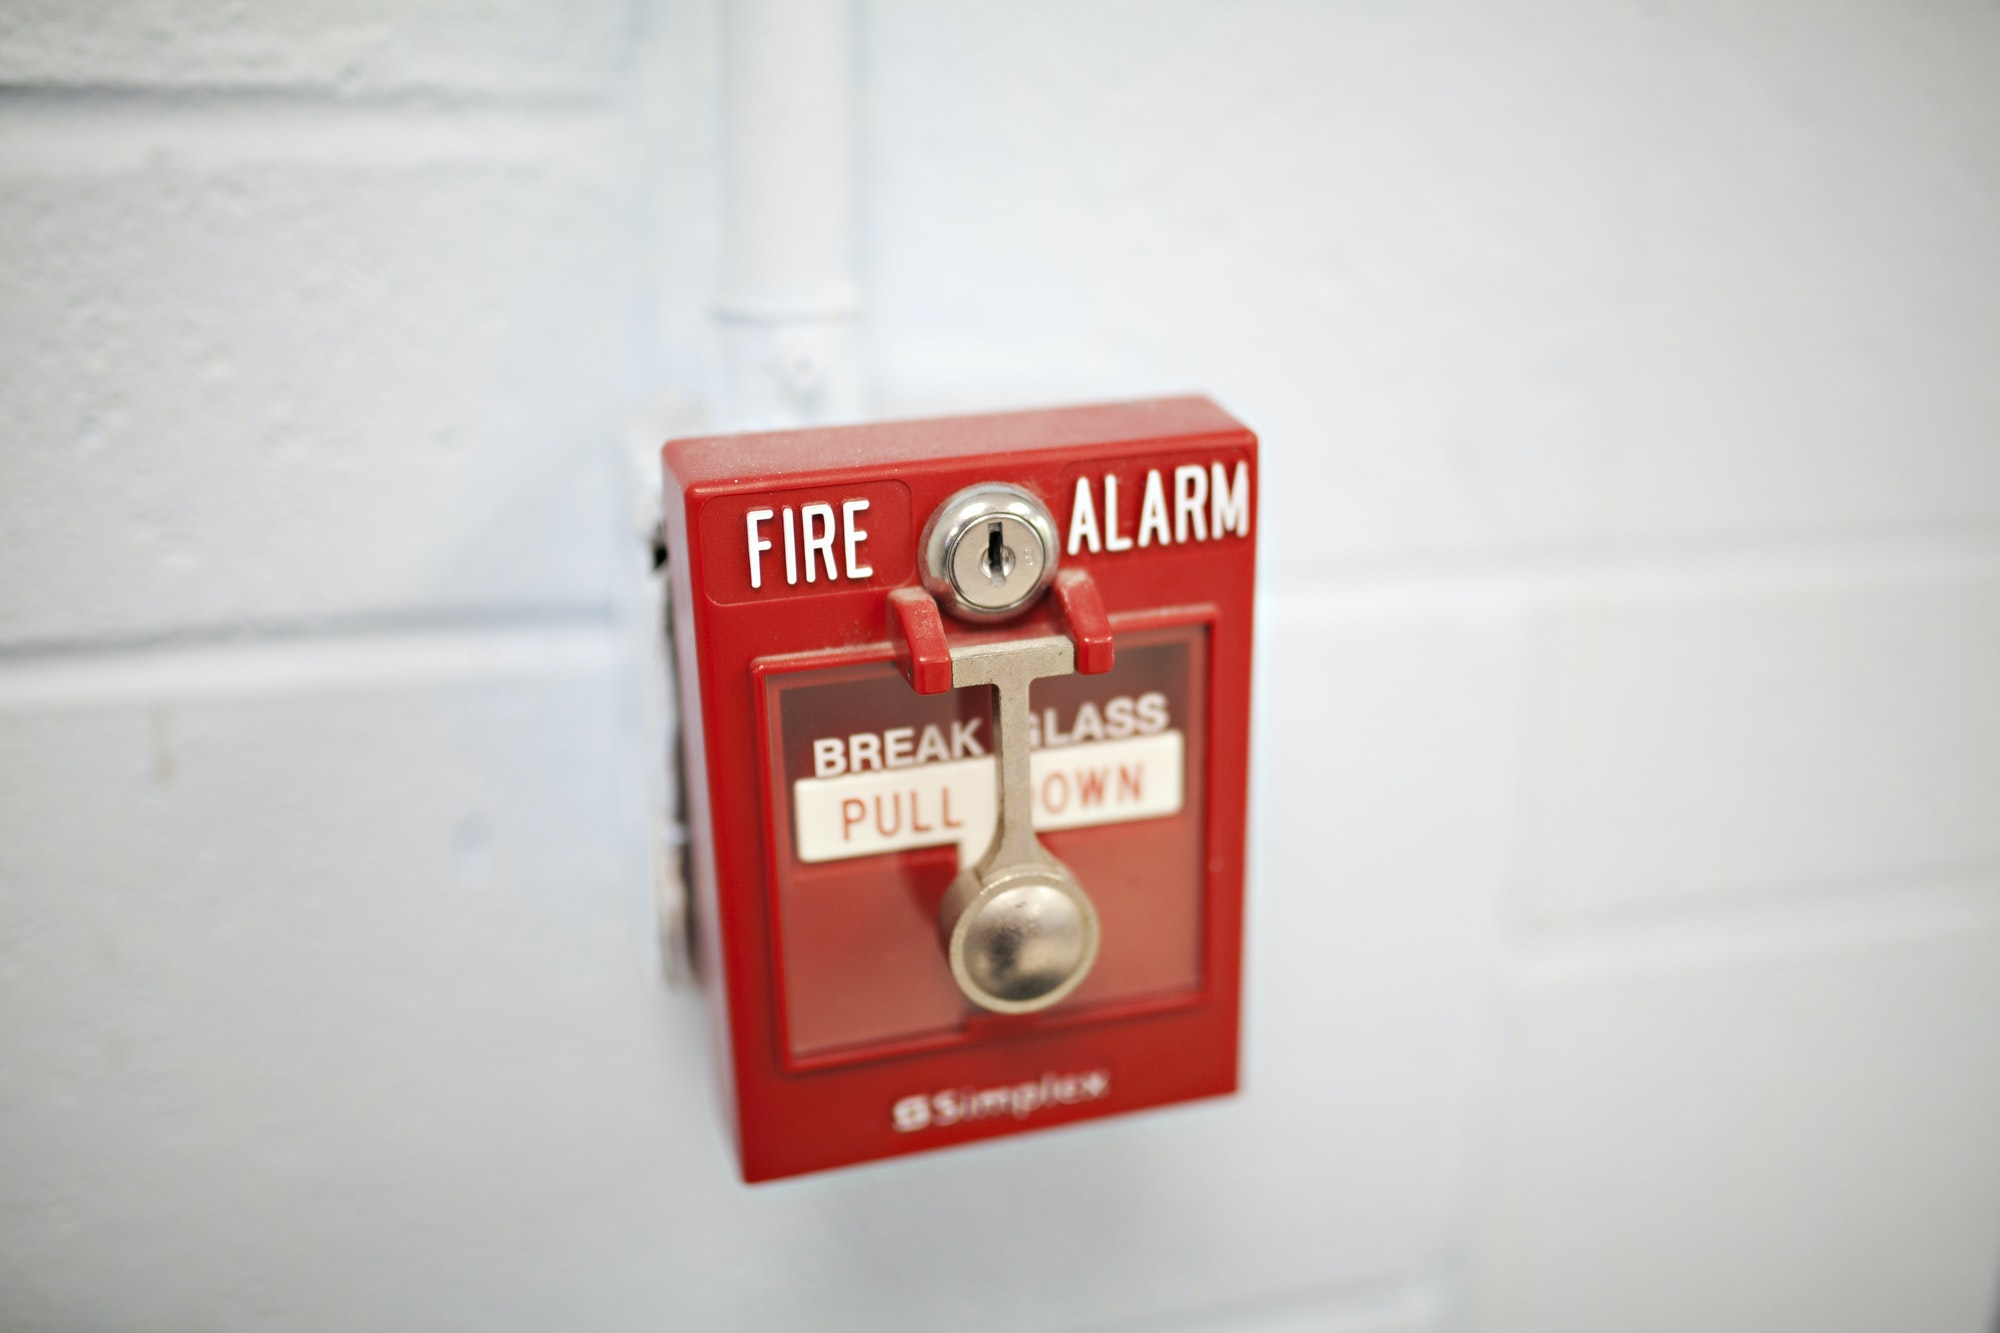 Fire alarm in a building